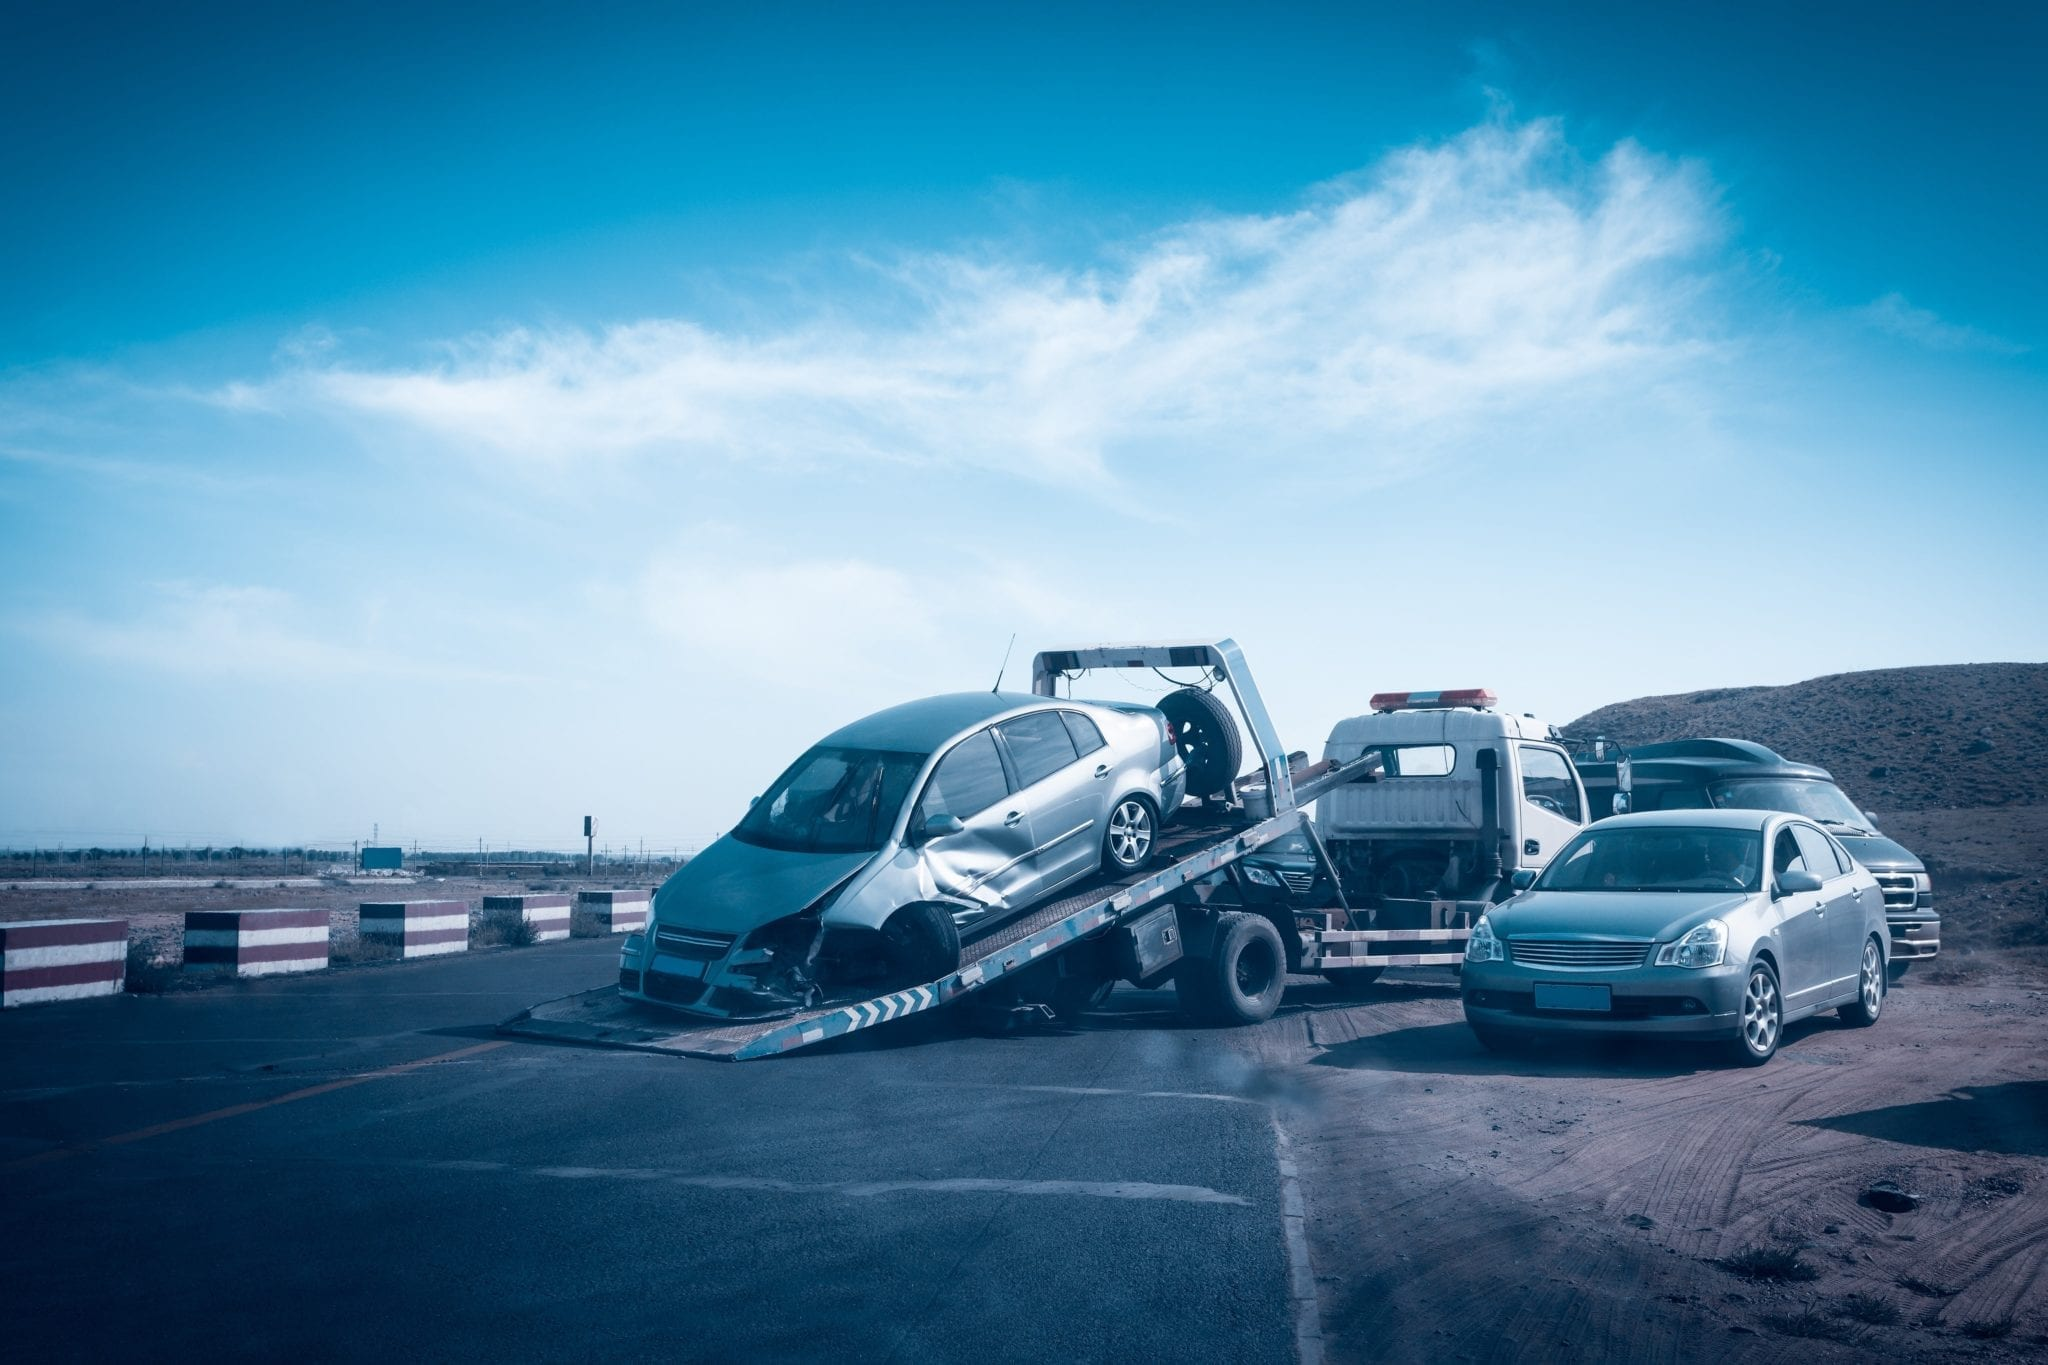 Car Being Towed Away After An Auto Accident Stock Photo